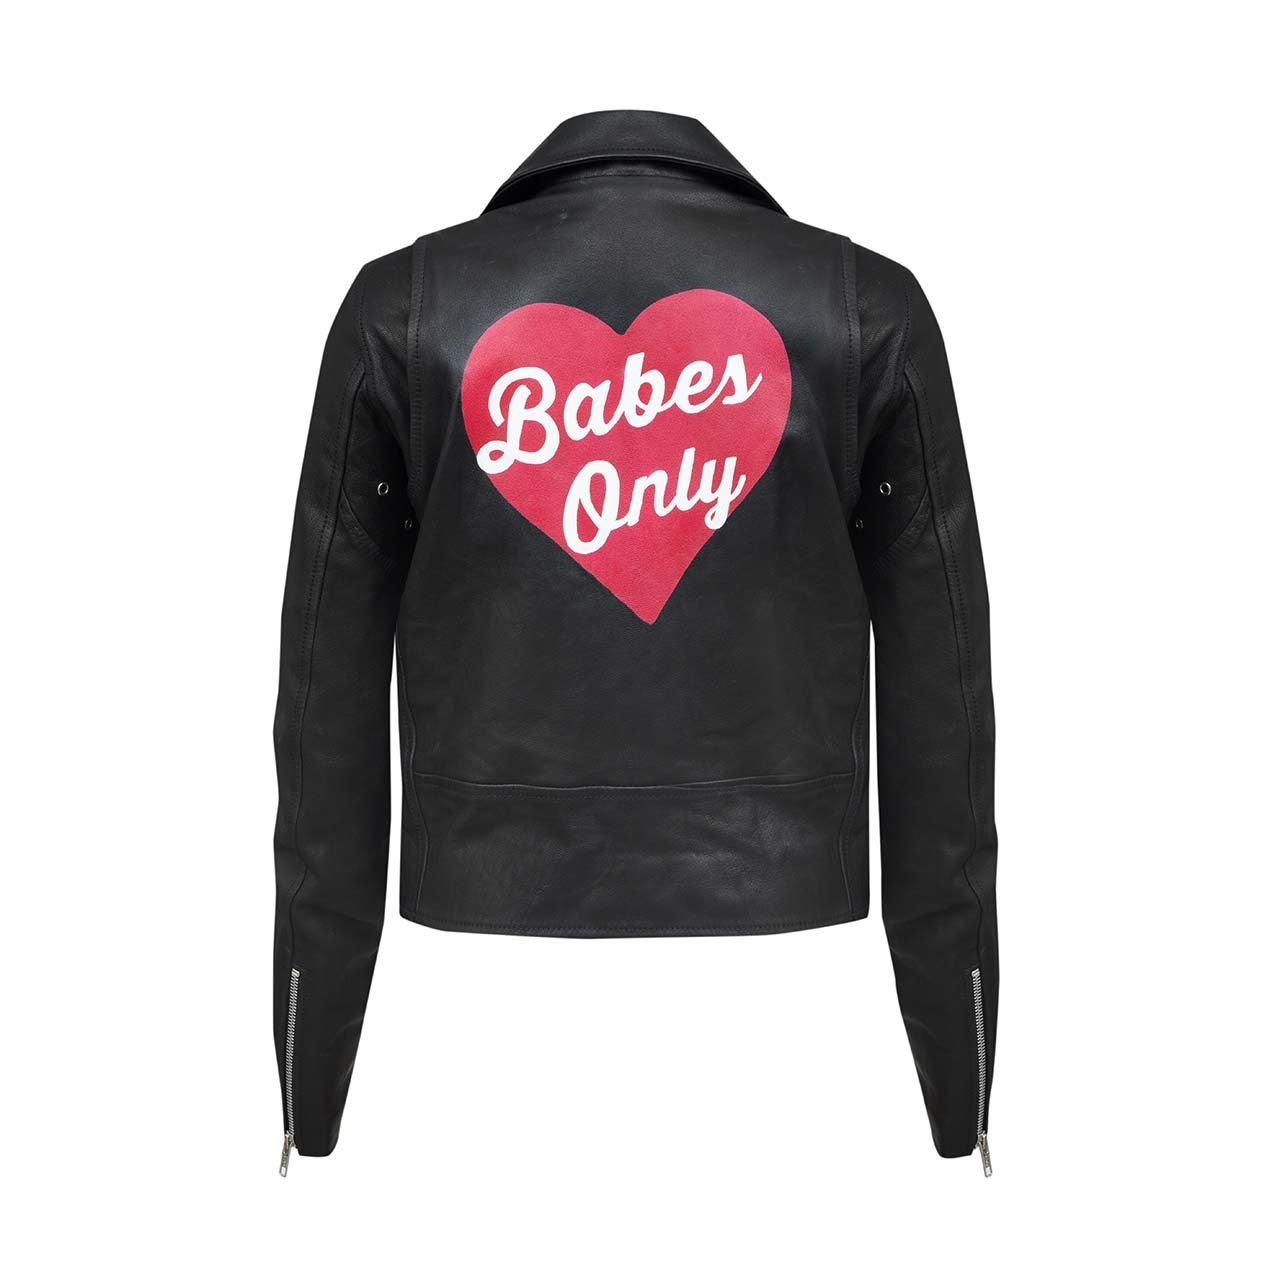 BABES ONLY LEATHER JACKET - WINSTON WOLFE